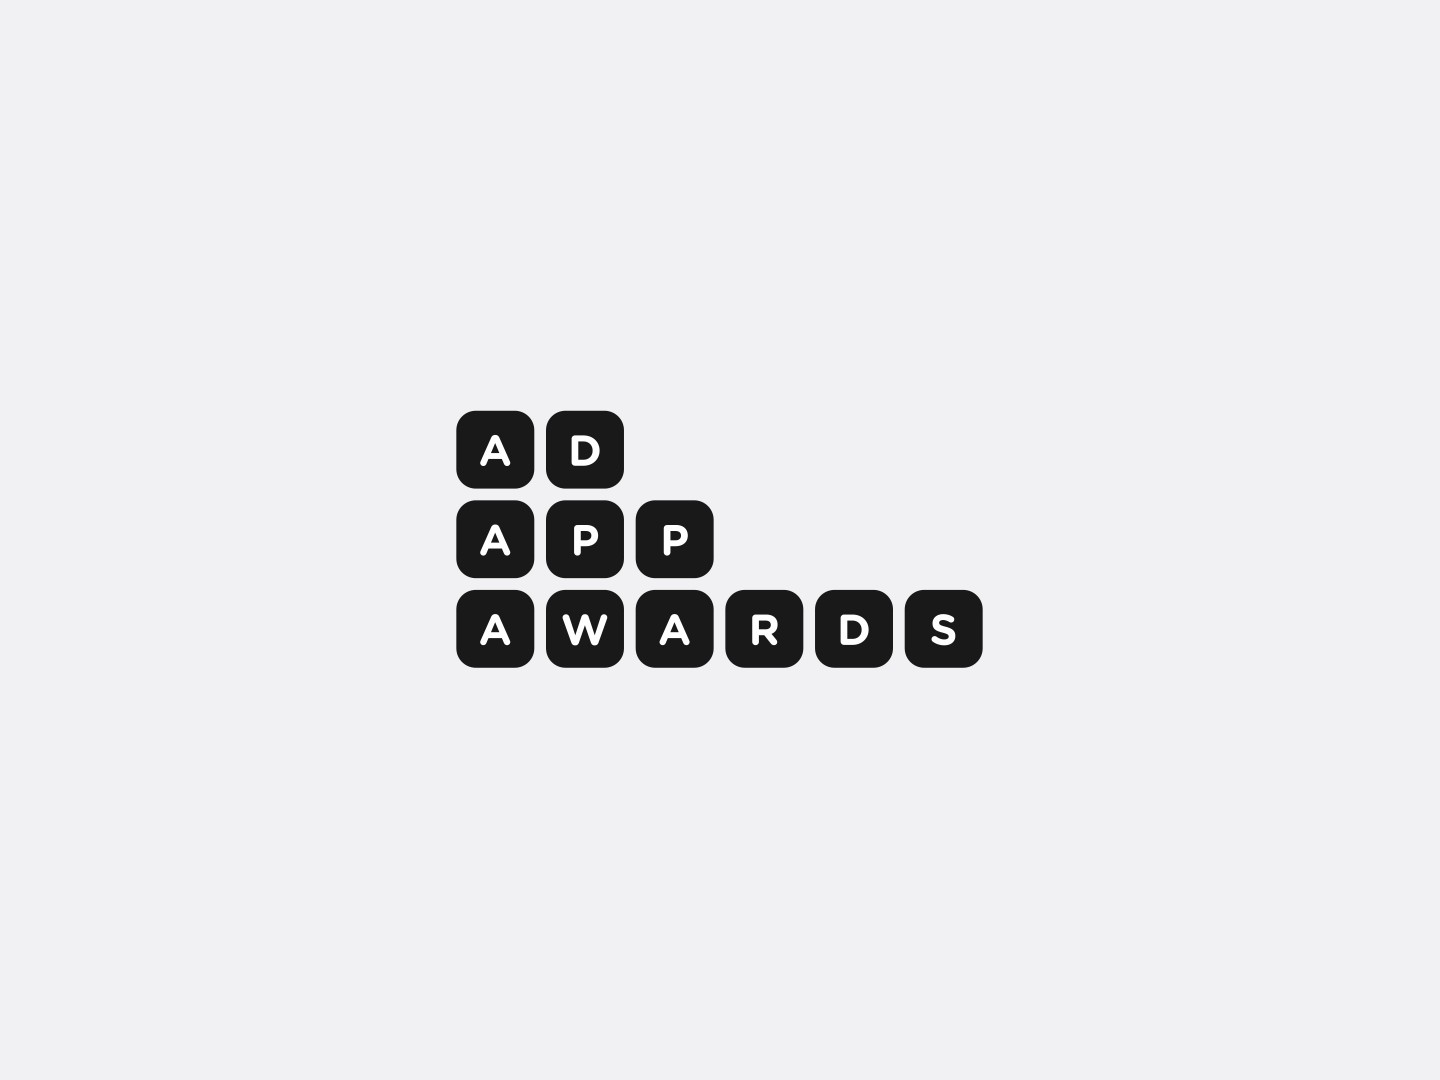 Ad App Awards